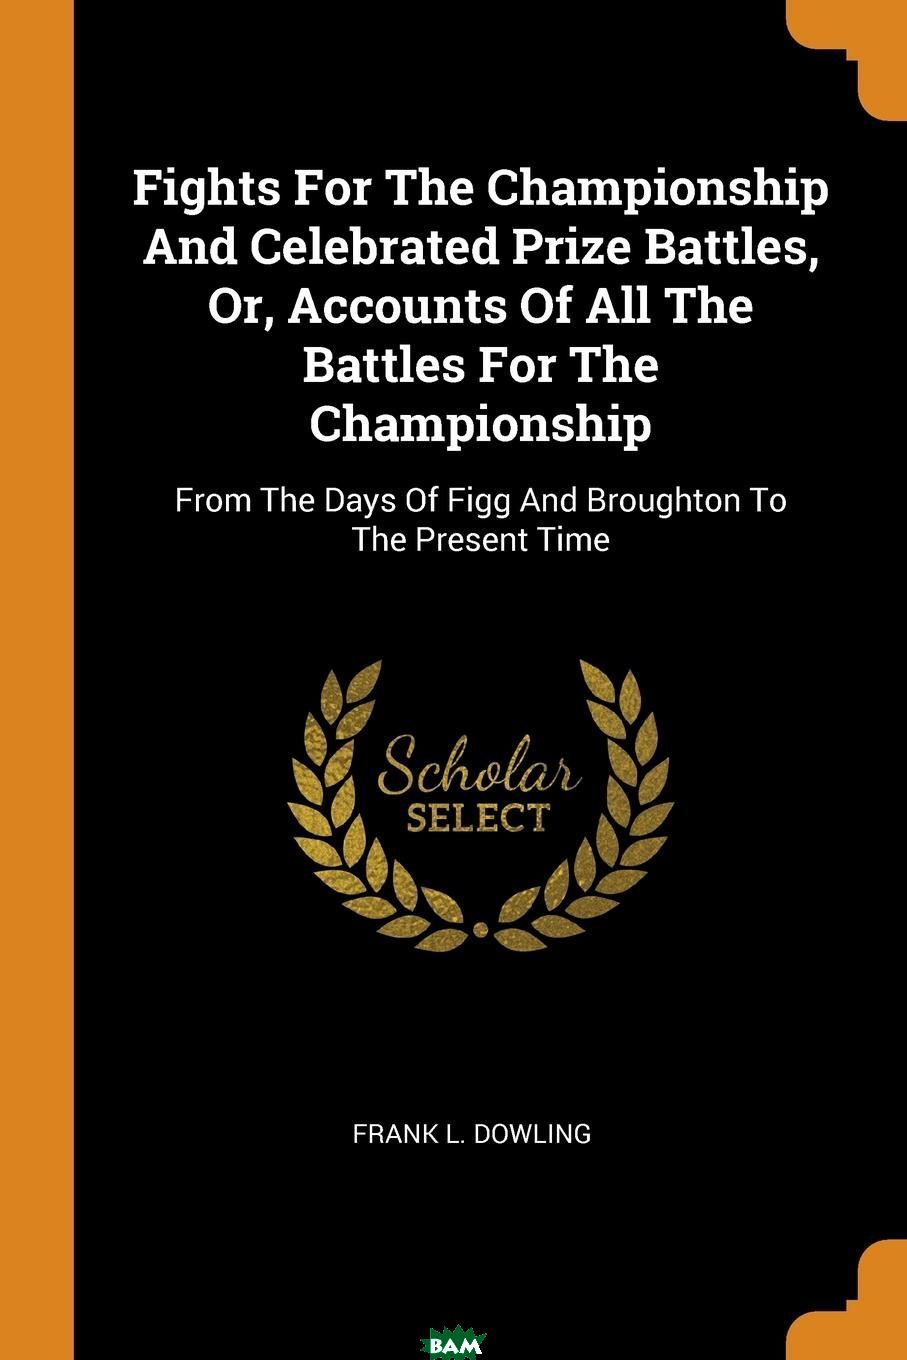 Fights For The Championship And Celebrated Prize Battles, Or, Accounts Of All The Battles For The Championship. From The Days Of Figg And Broughton To The Present Time, Frank L. Dowling, 9780353377622  - купить со скидкой